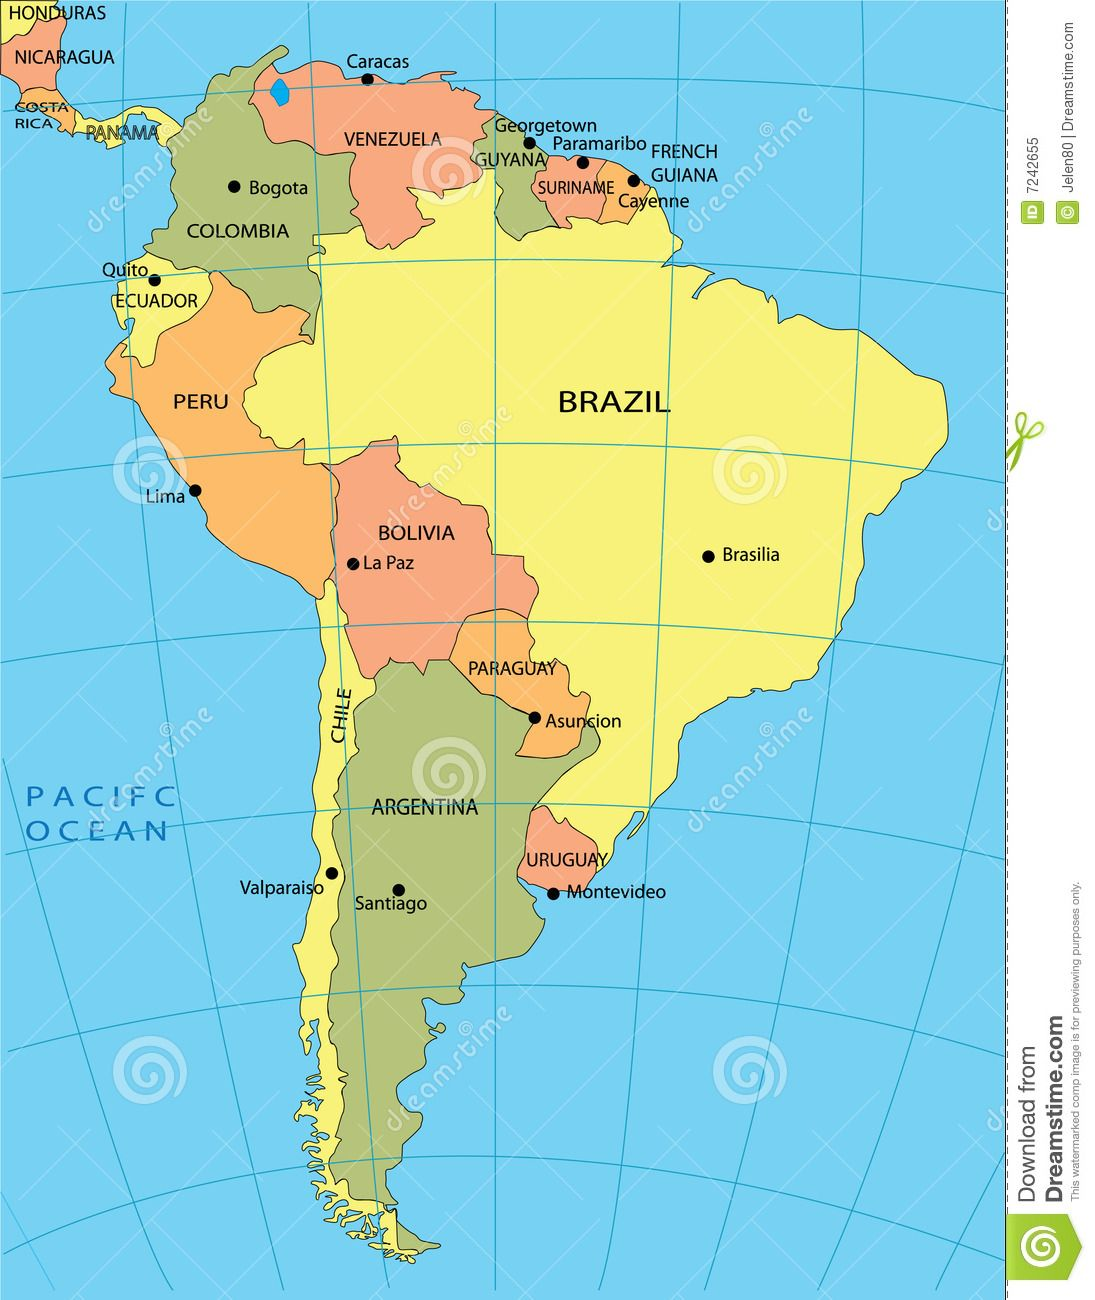 America Map Hd.Map Of South America Political Images Hd Blogs Reading Ideas